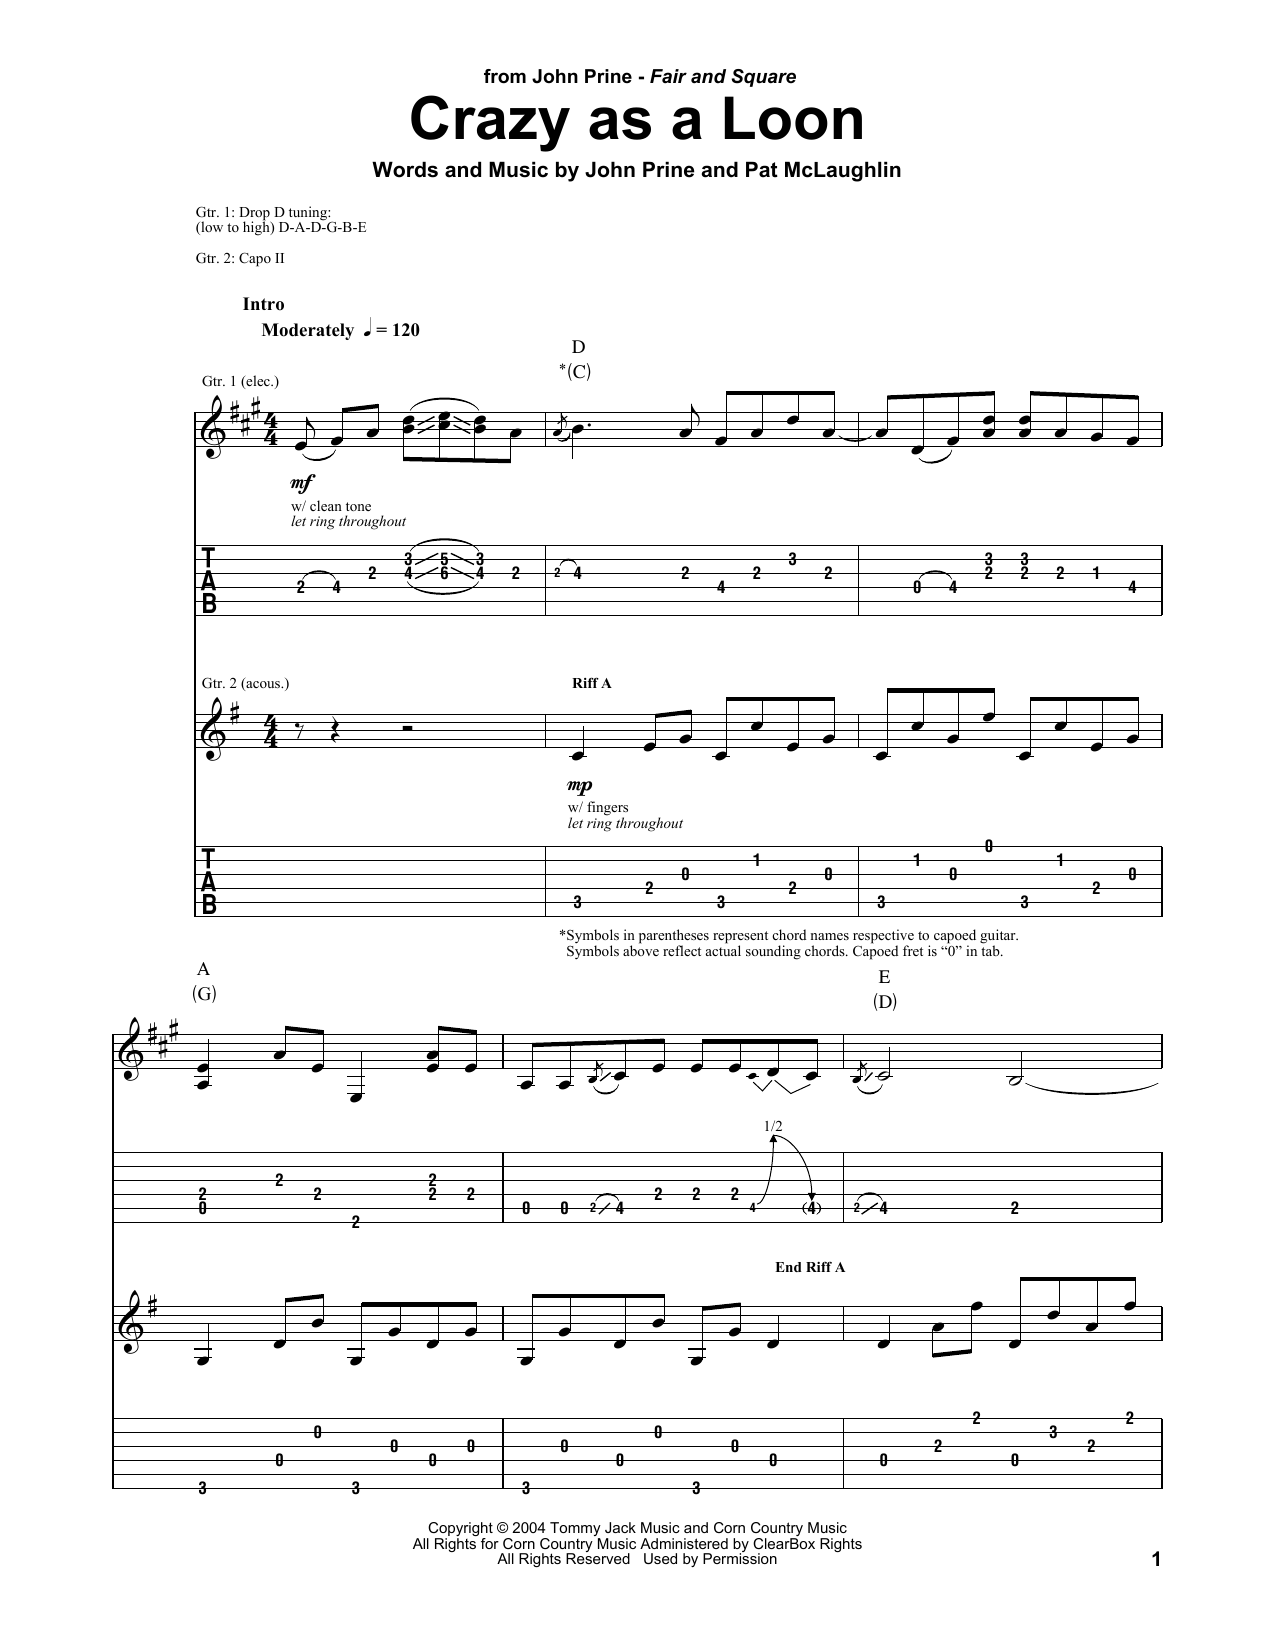 John Prine Crazy As A Loon sheet music notes and chords. Download Printable PDF.